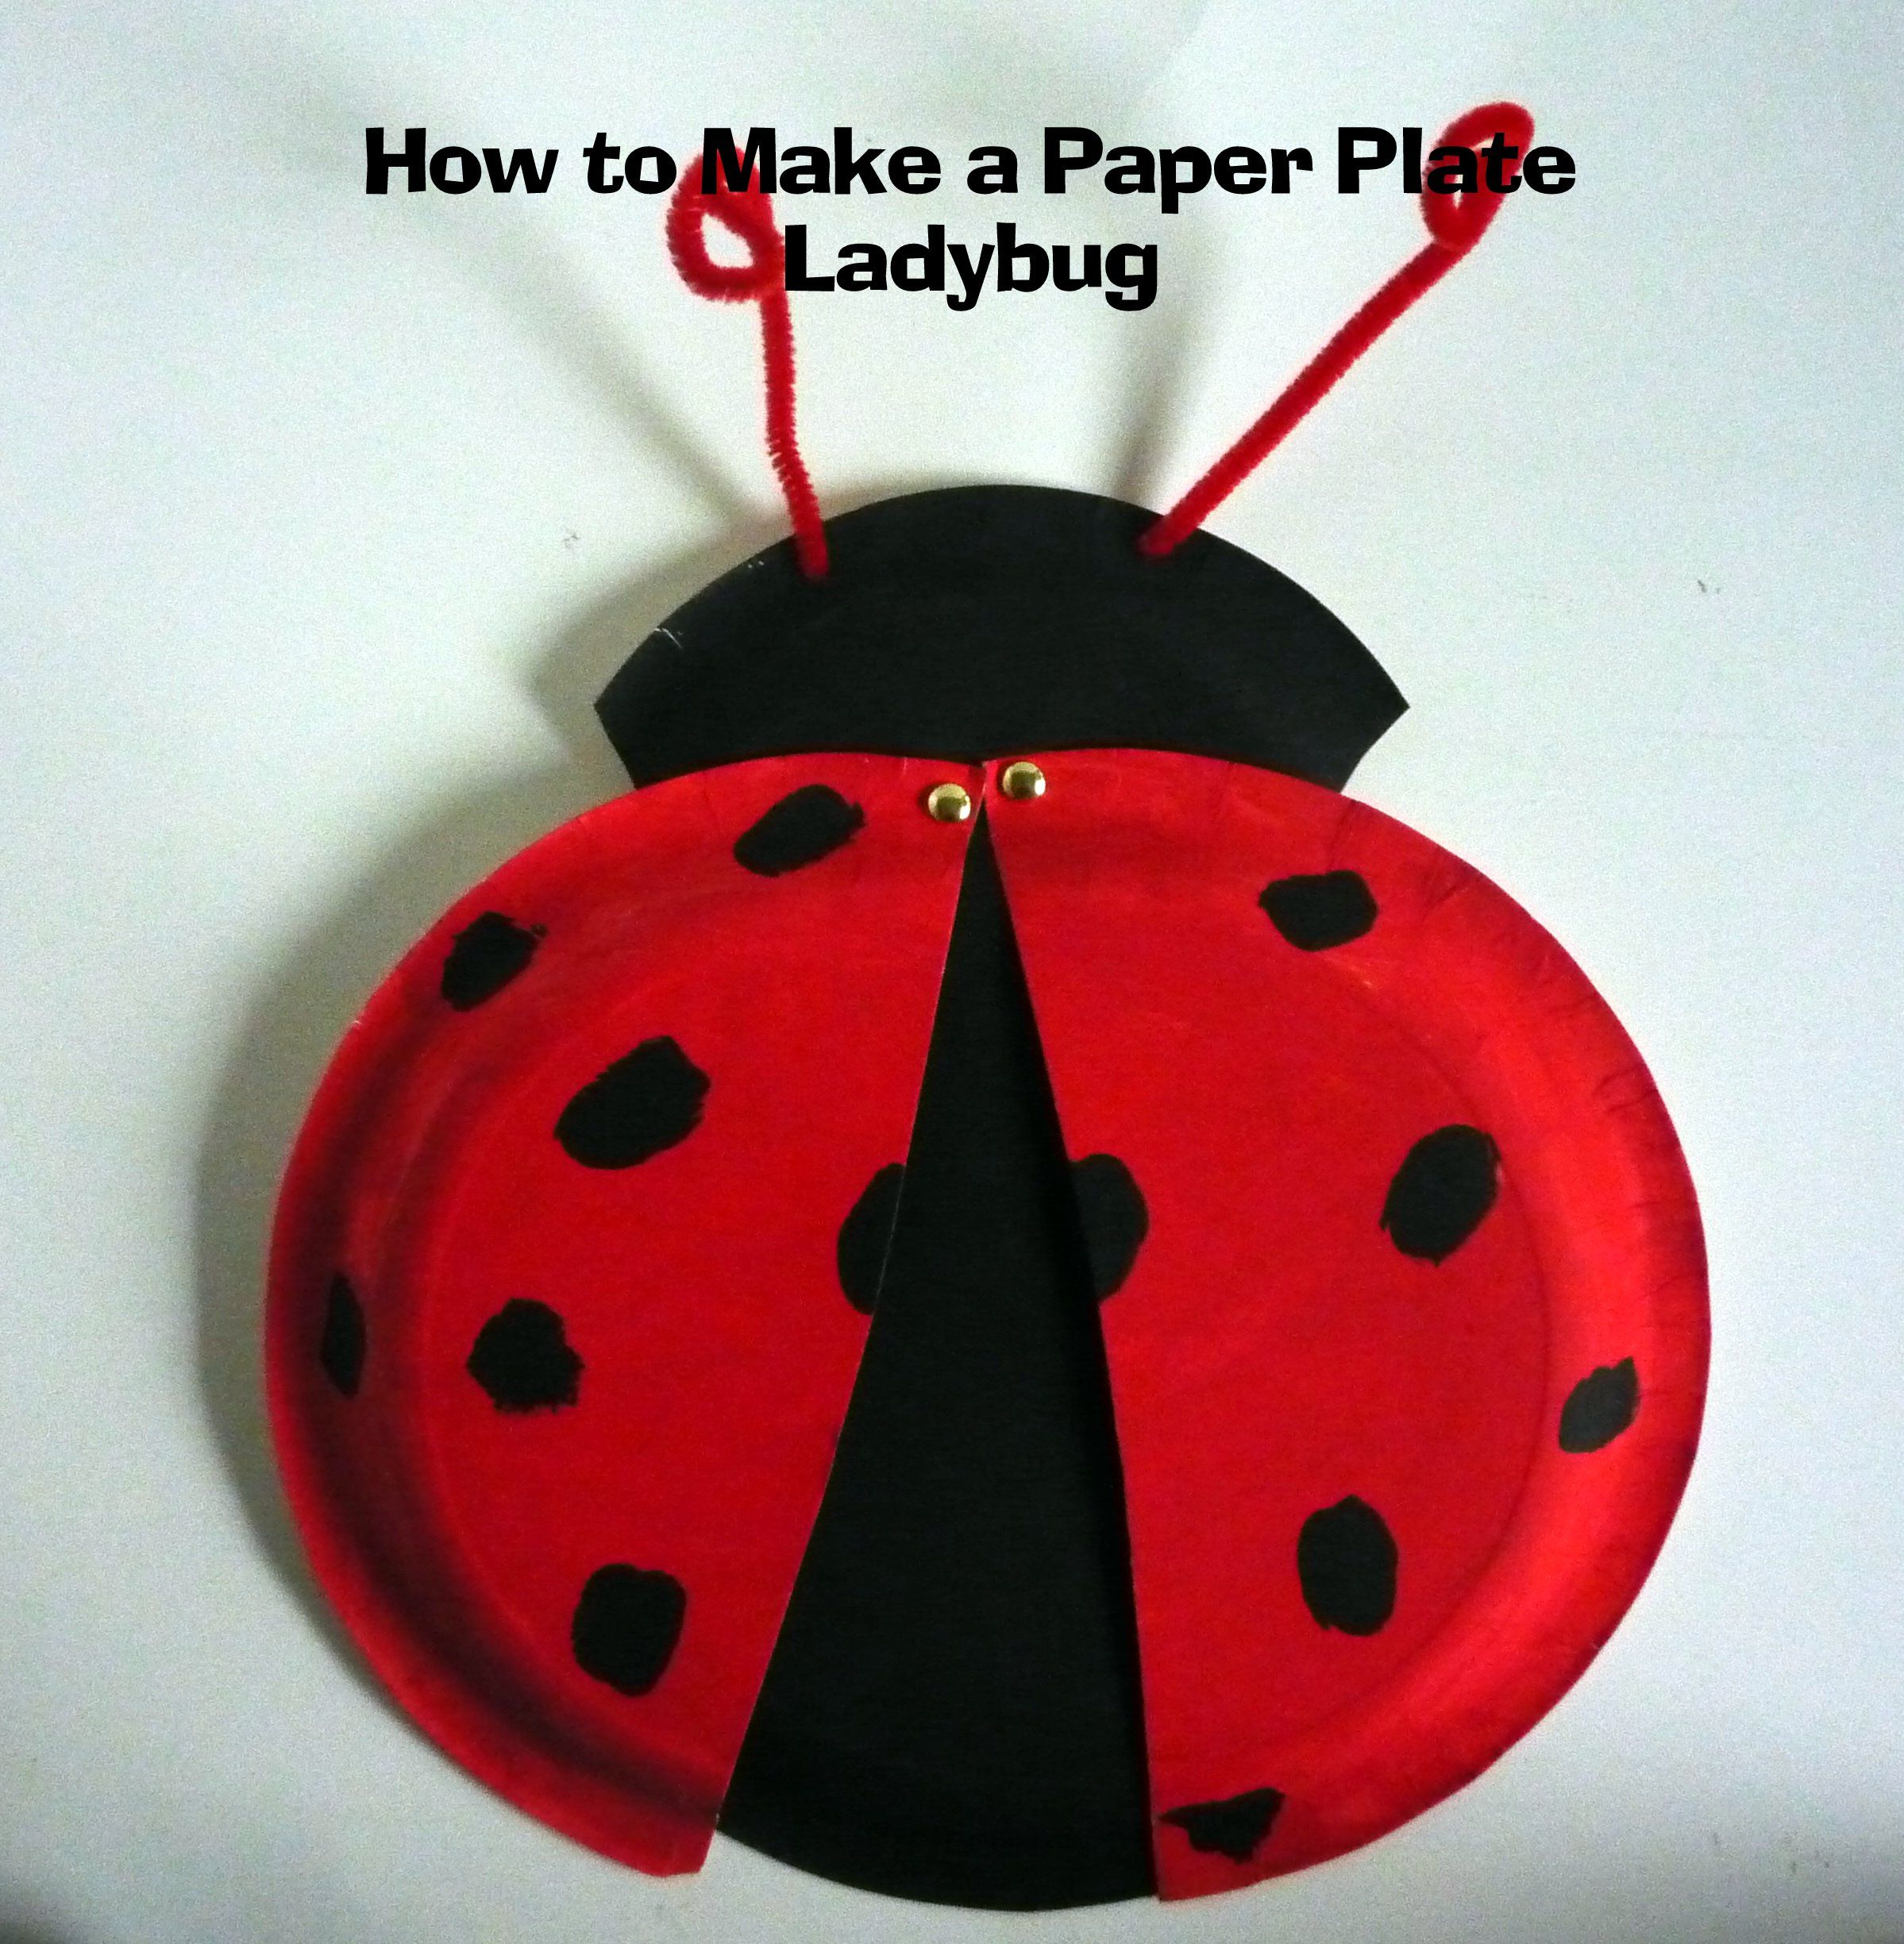 ladybug paper Preschool and kindergarten children will find this a fun and busy craft just help them with the cutting part of this craft you'll enjoy showing the kids how easy it is to fold the paper and cut the shape to make this paper ladybug.